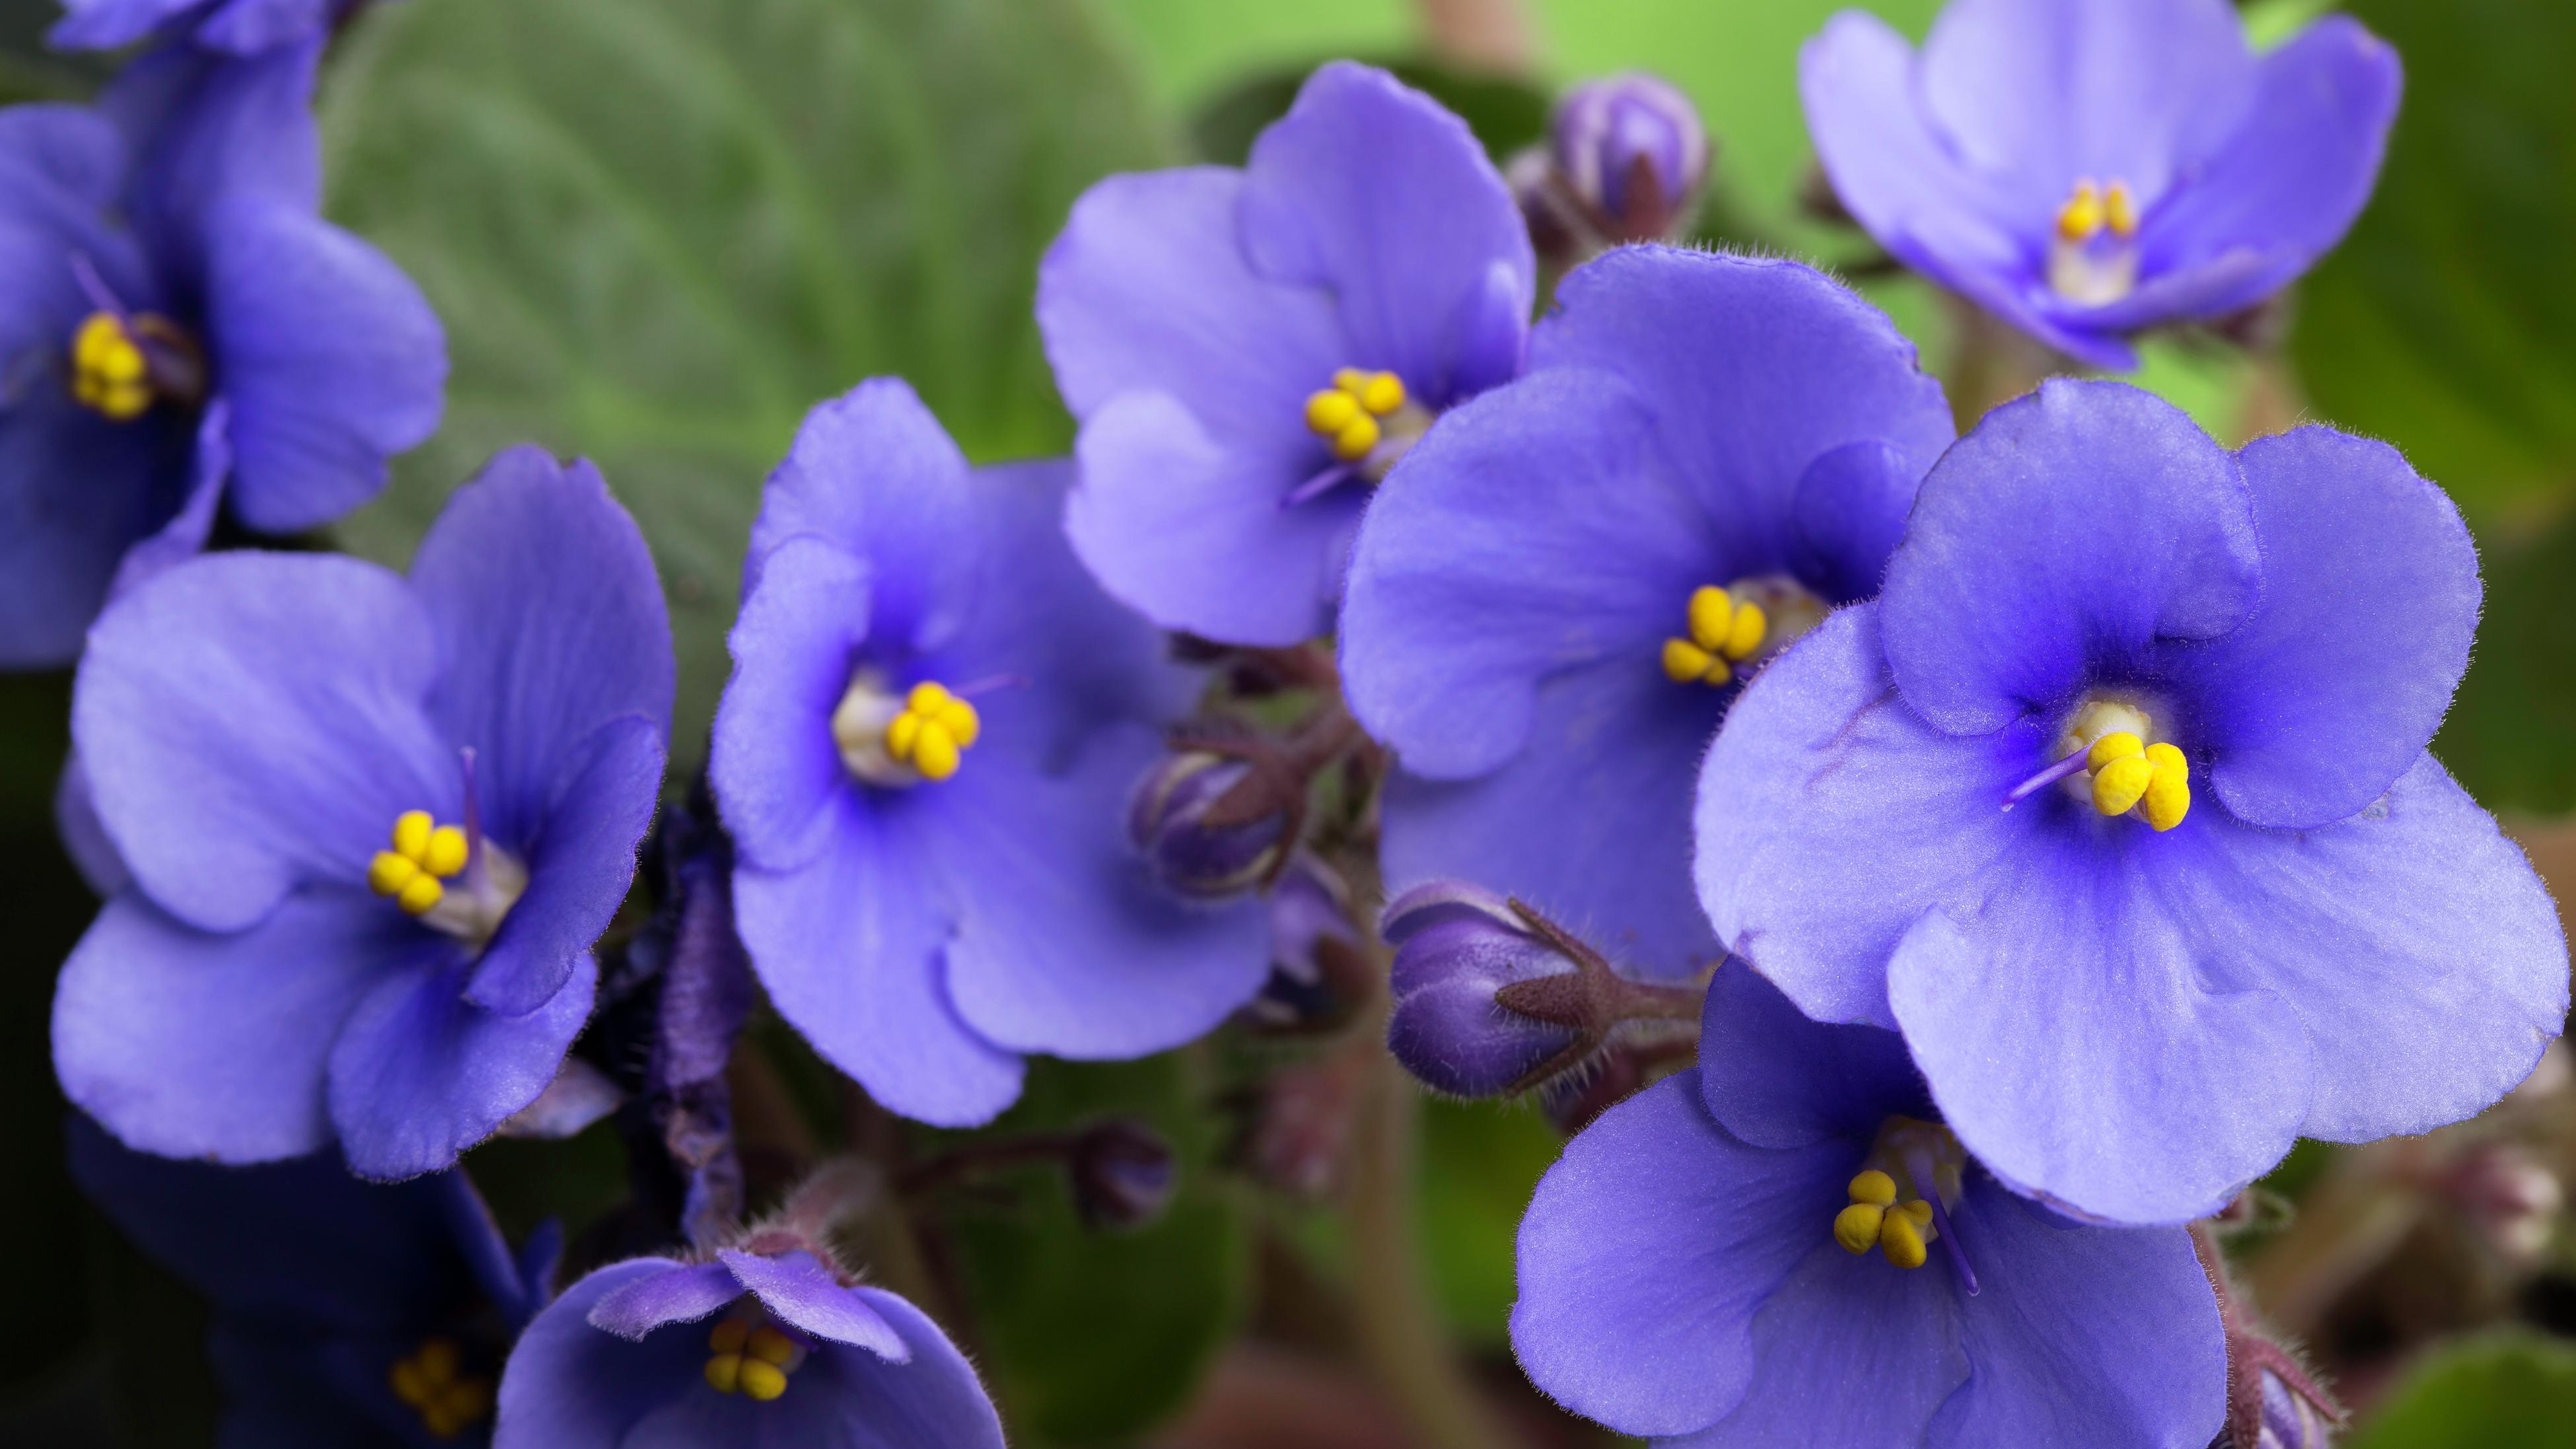 Close up of purple African violet flowers